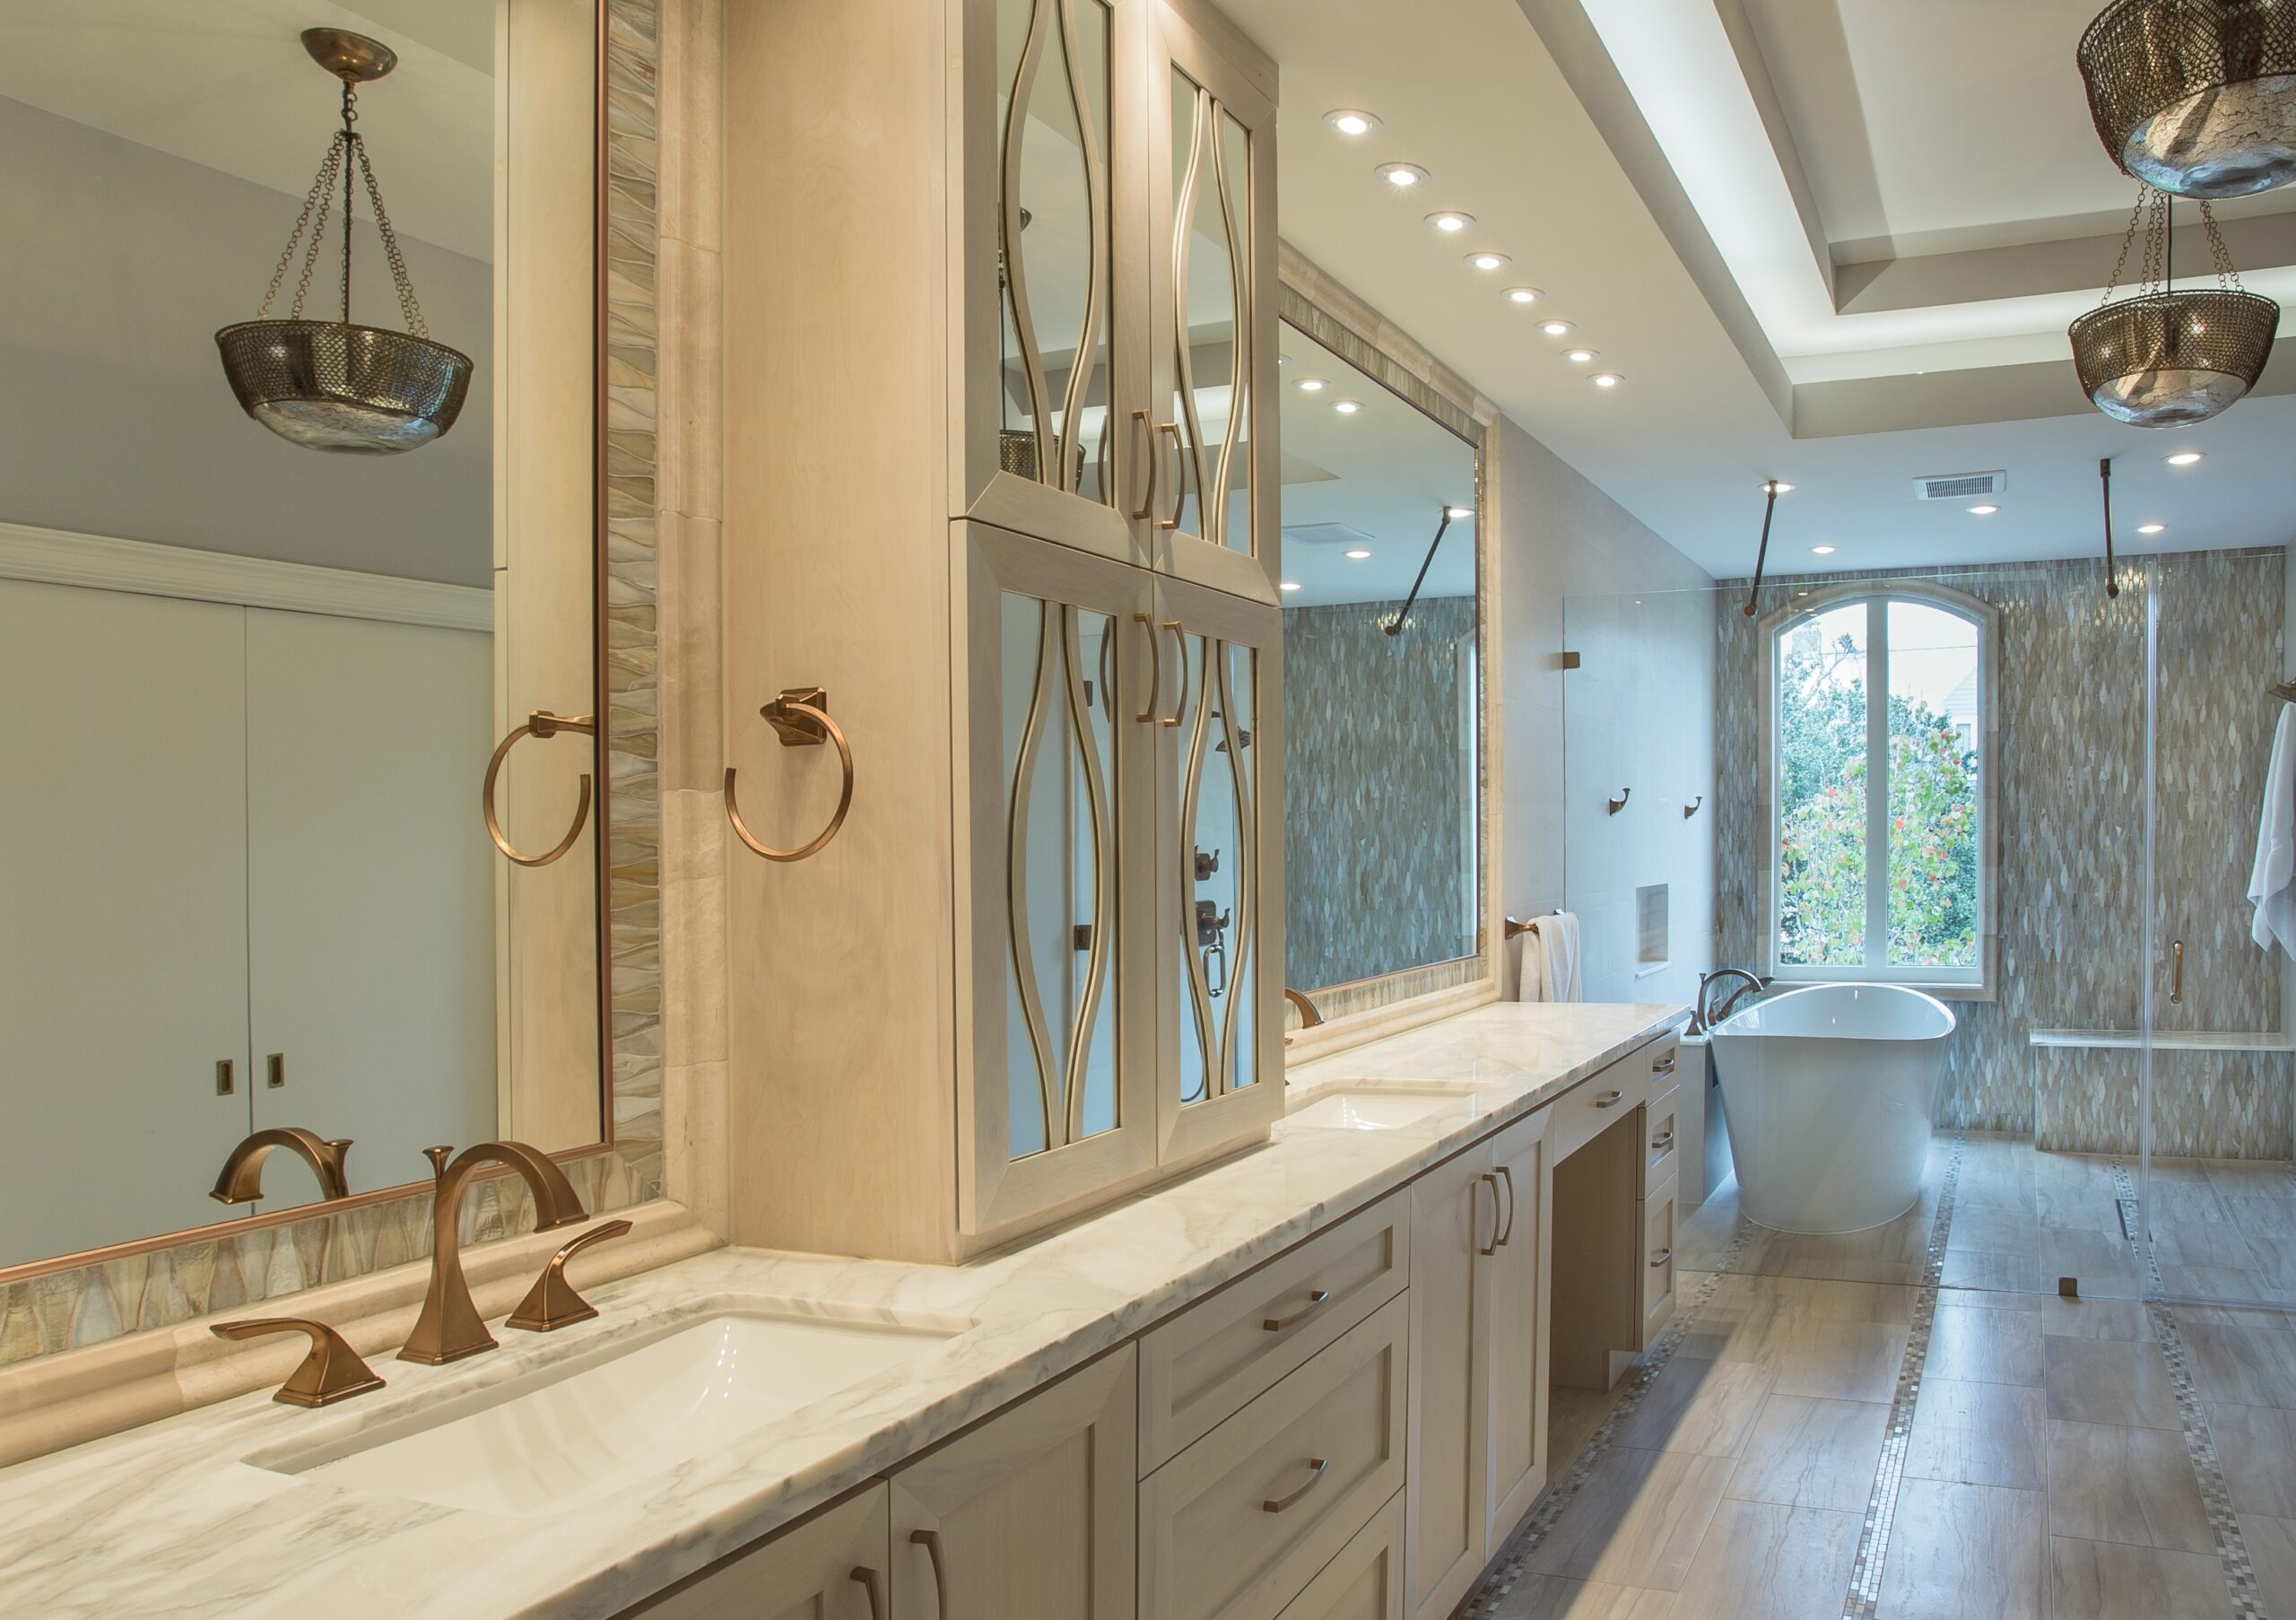 Bathroom Remodeling Houston Tx river oaks | houston, texas | tranquil spa master bathroom remodel